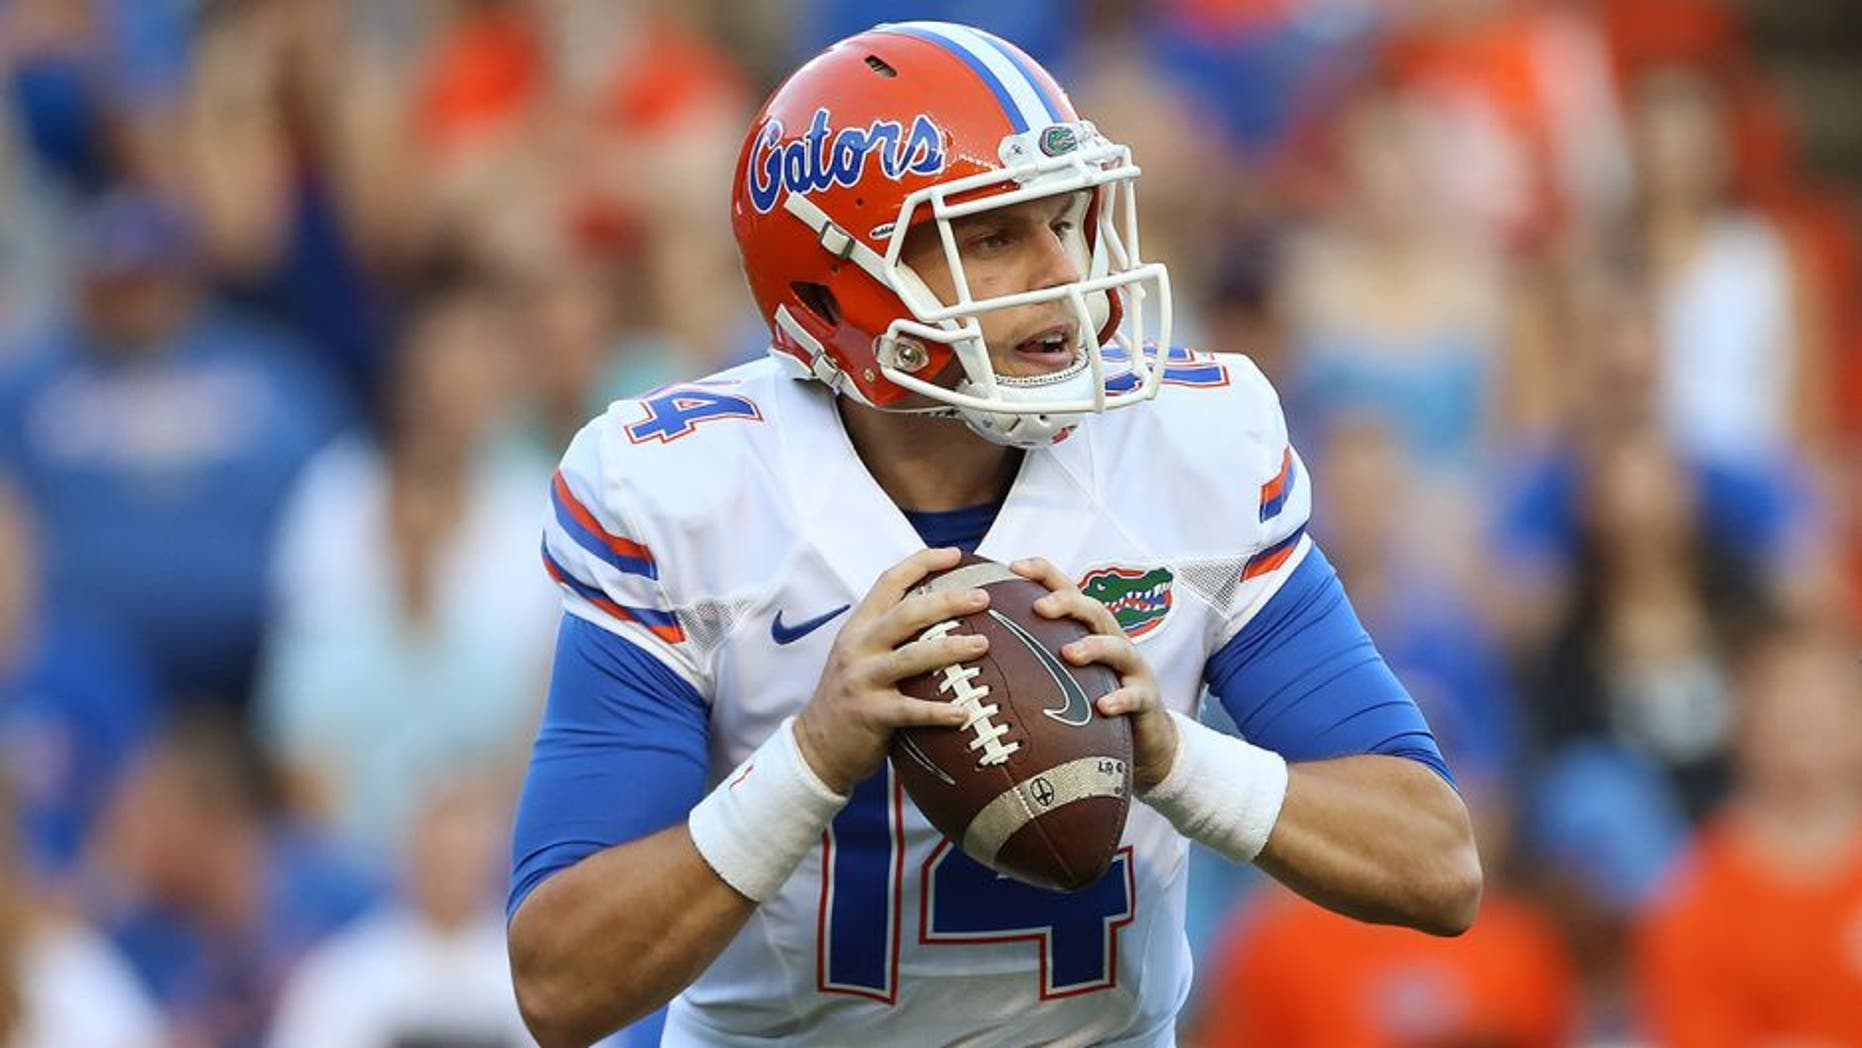 Apr 8, 2016; Gainesville, FL, USA; Florida Gators quarterback Luke Del Rio (14) looks to pass in the first quarter of the Orange and Blue at Ben Hill Griffin Stadium. Mandatory Credit: Logan Bowles-USA TODAY Sports